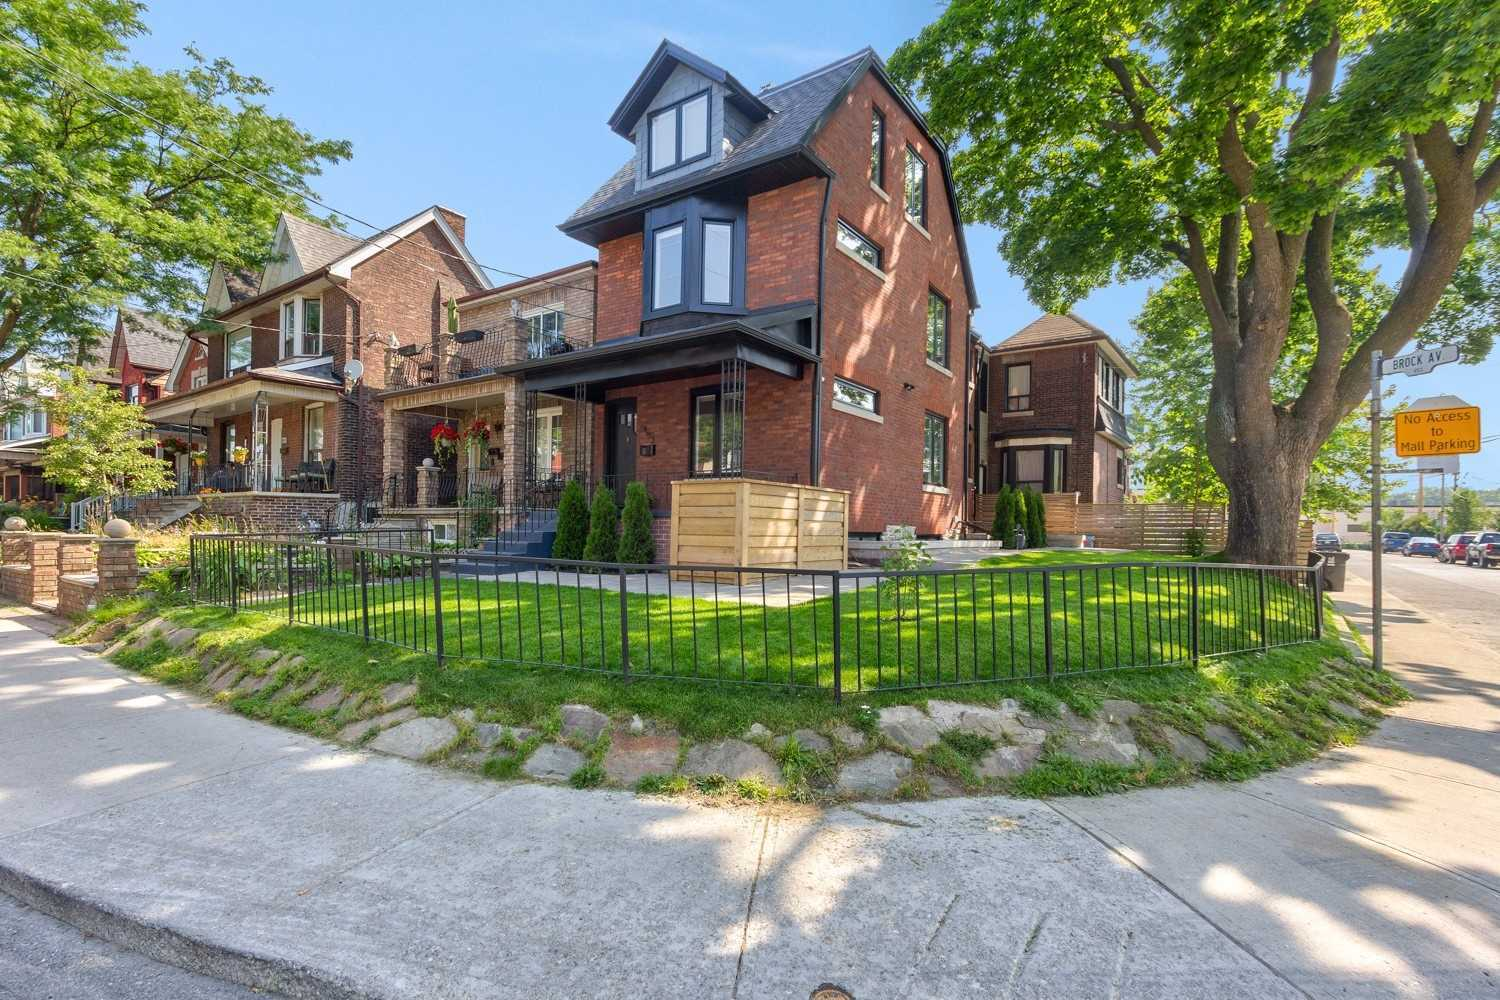 453 Brock Ave, Toronto, Ontario M6H3N8, 5 Bedrooms Bedrooms, 11 Rooms Rooms,3 BathroomsBathrooms,Semi-detached,For Sale,Brock,W4845824